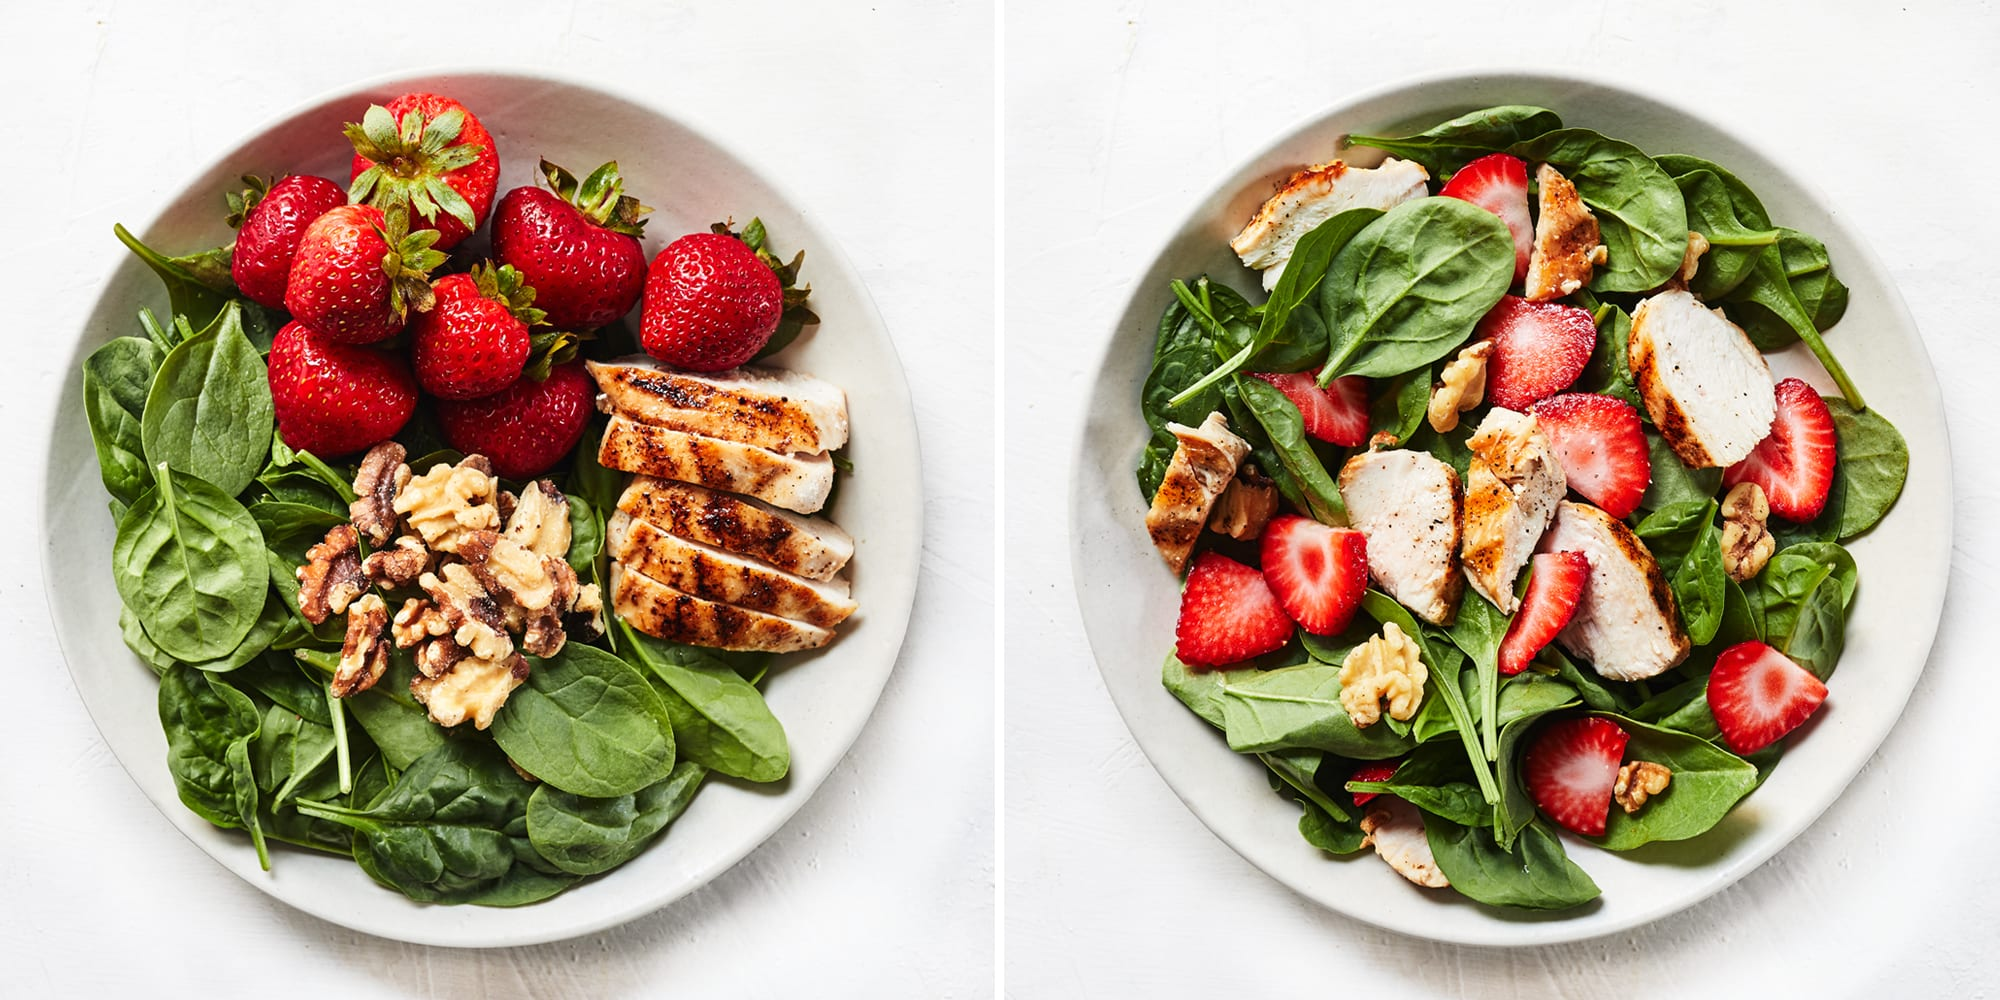 Chicken, Strawberry, and Spinach Salad with Walnuts